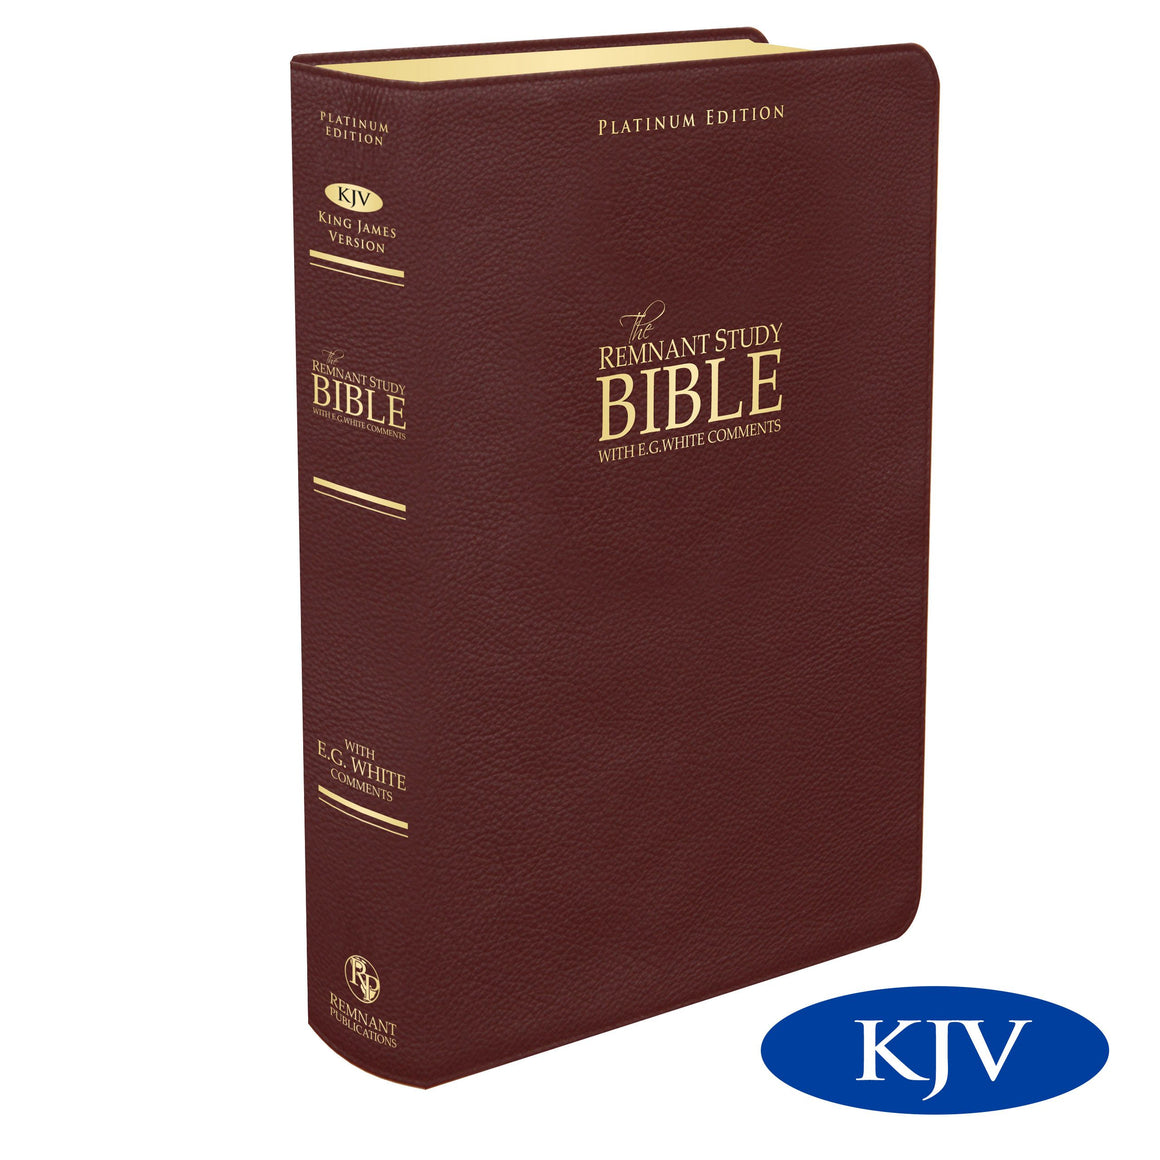 Platinum Remnant Study Bible KJV (Top-grain Leather Maroon)